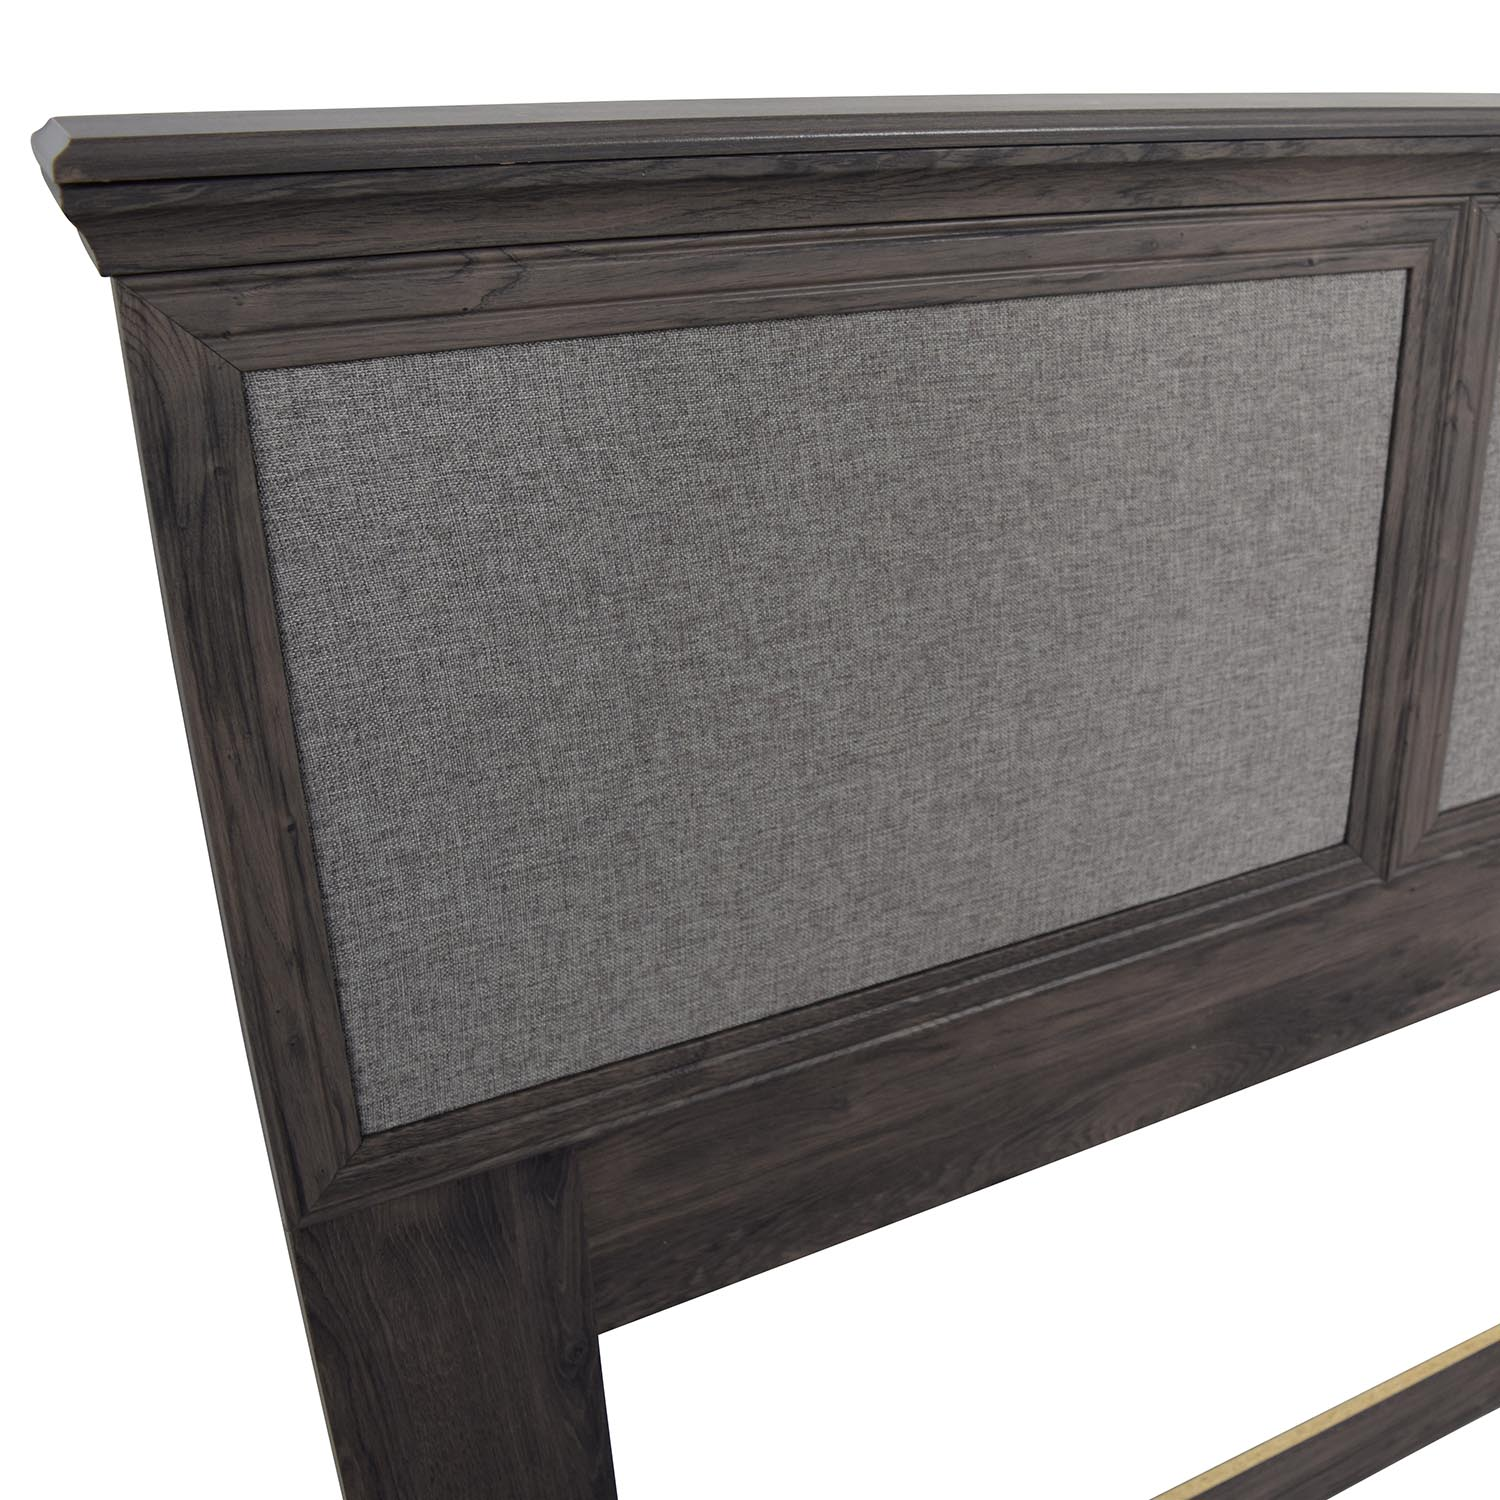 90 Off Grey Rustic Wood Upholstered Headboard Beds